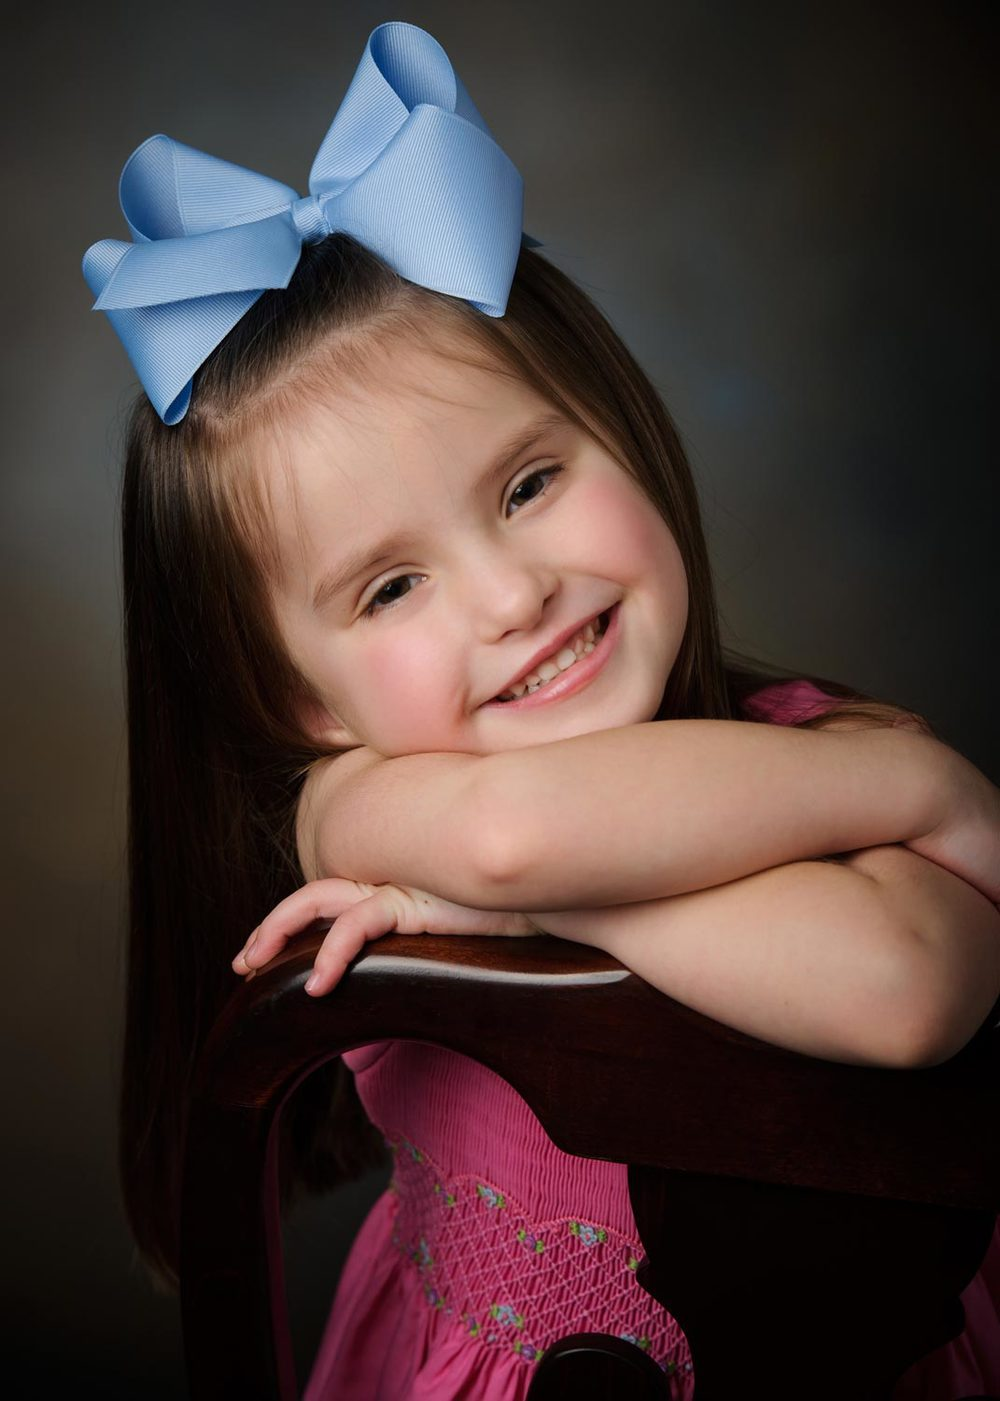 childrens_photographer_lexington_ky_studio_walz02.jpg